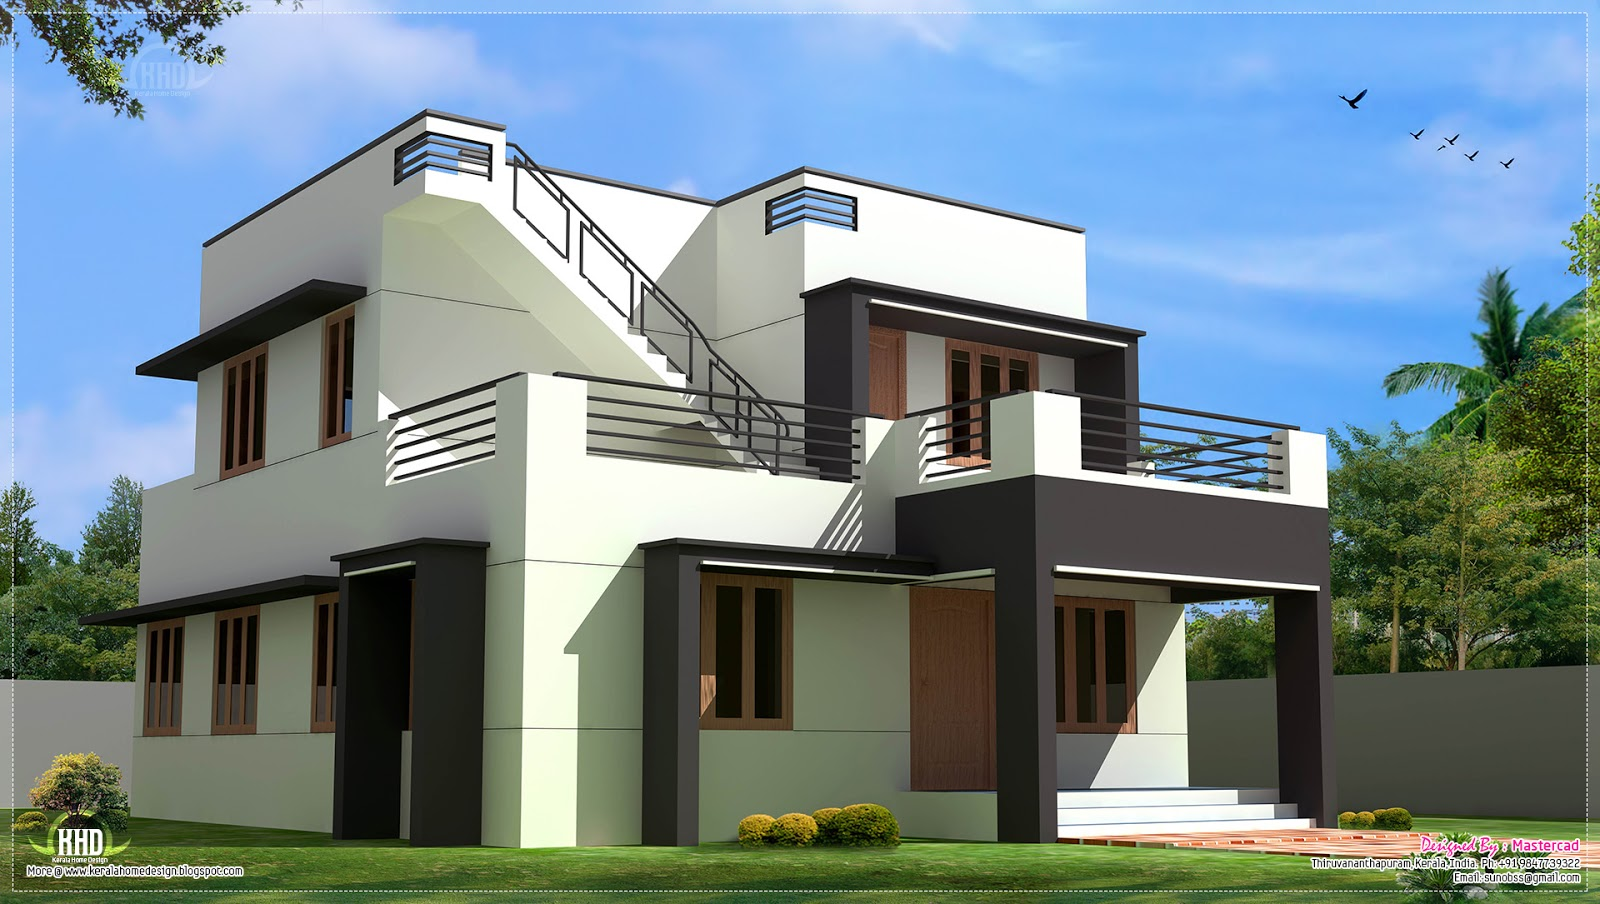 Modern house design in 1700 kerala home design for Contemporary home designs india